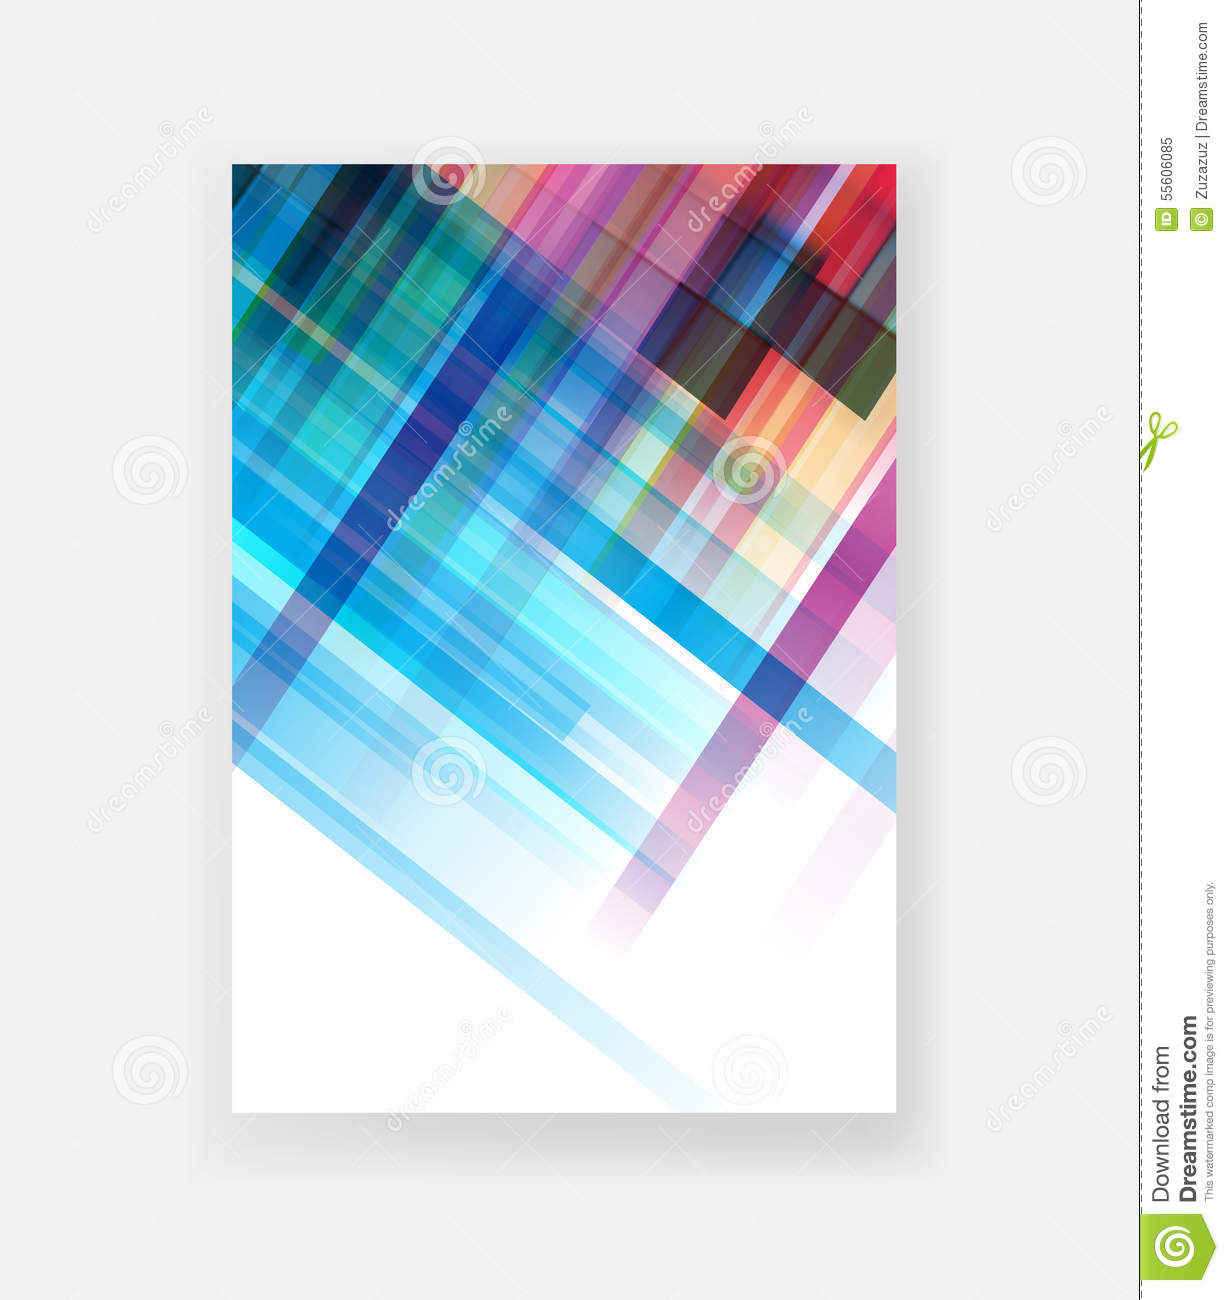 Cover design templates stock illustration image 55606085 for Book cover template illustrator